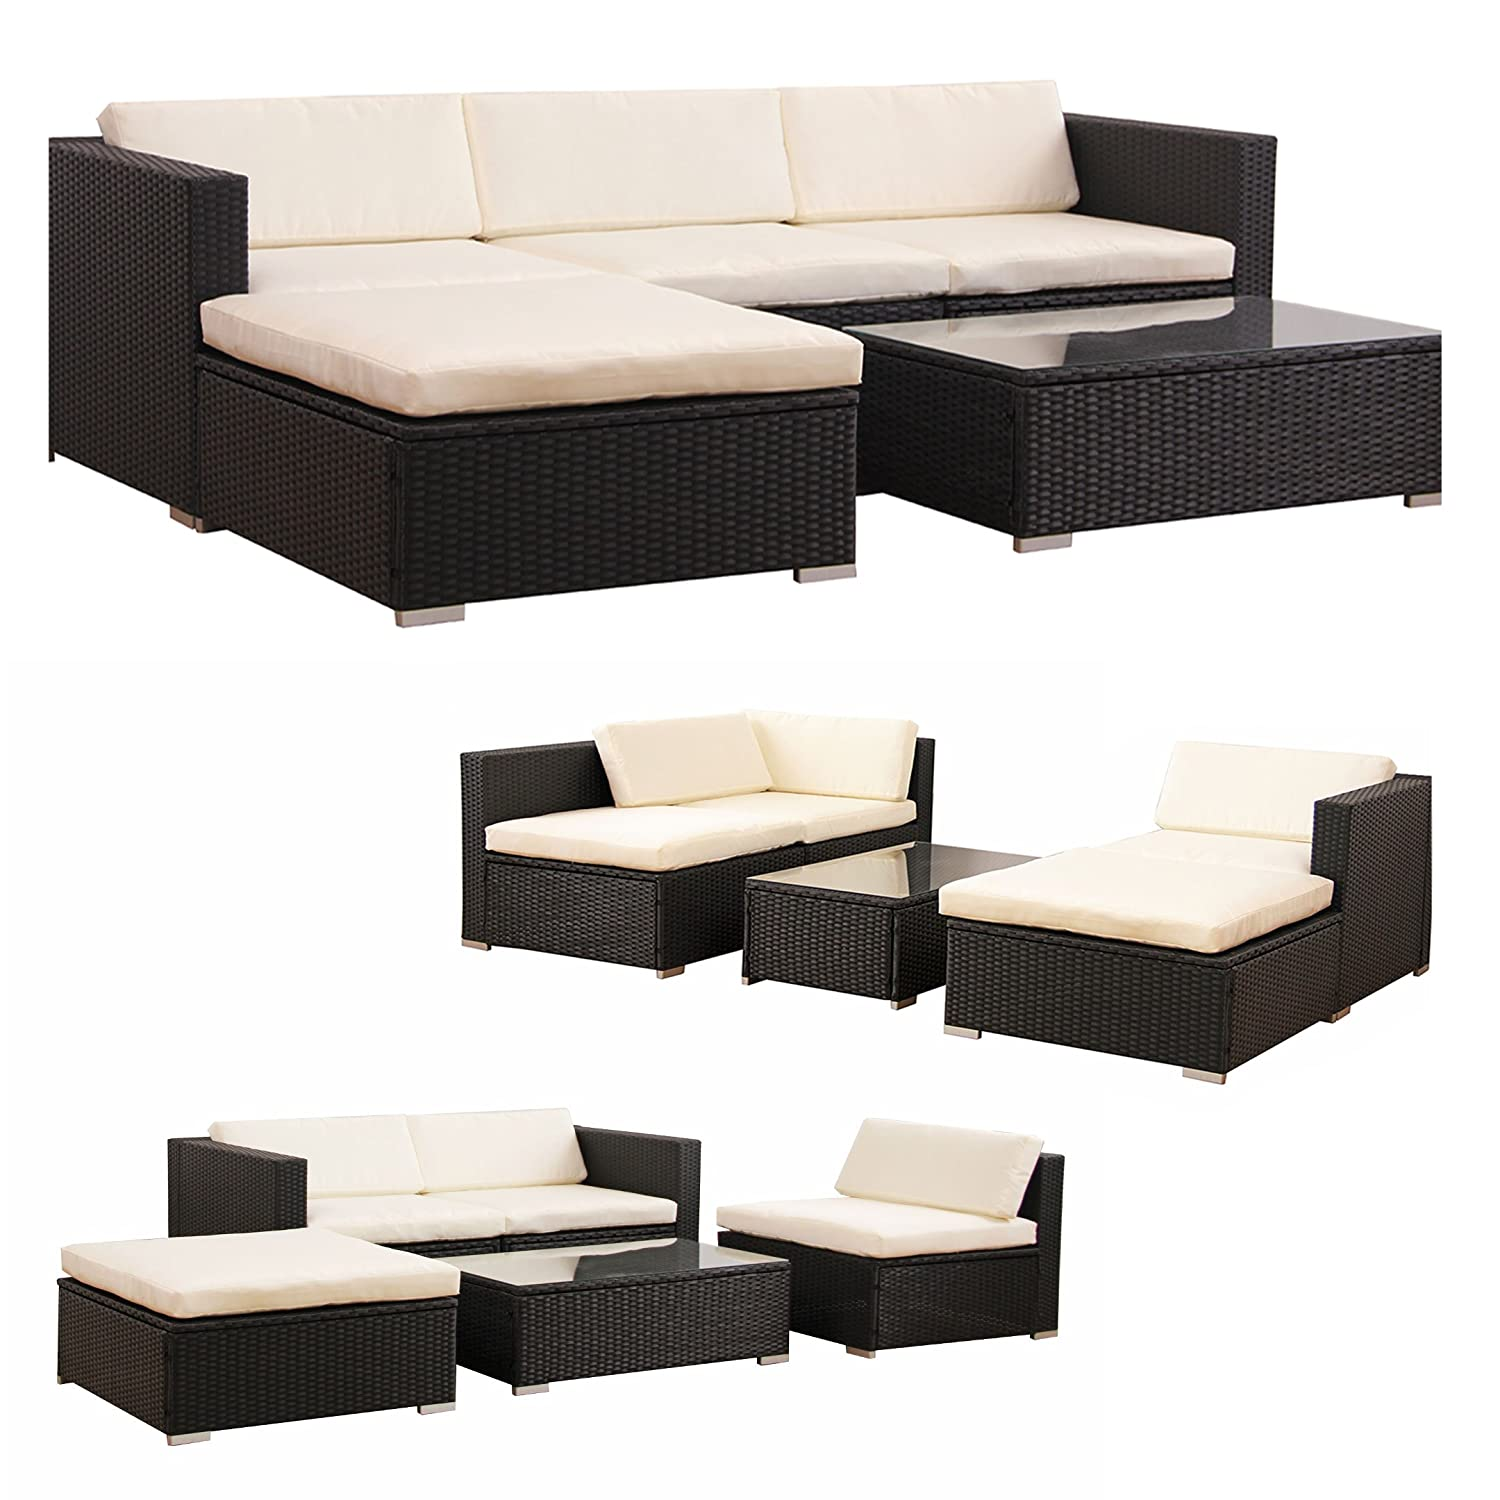 poly rattan lounge gartenset schwarz sofa garnitur polyrattan gartenm bel neu g nstig kaufen. Black Bedroom Furniture Sets. Home Design Ideas